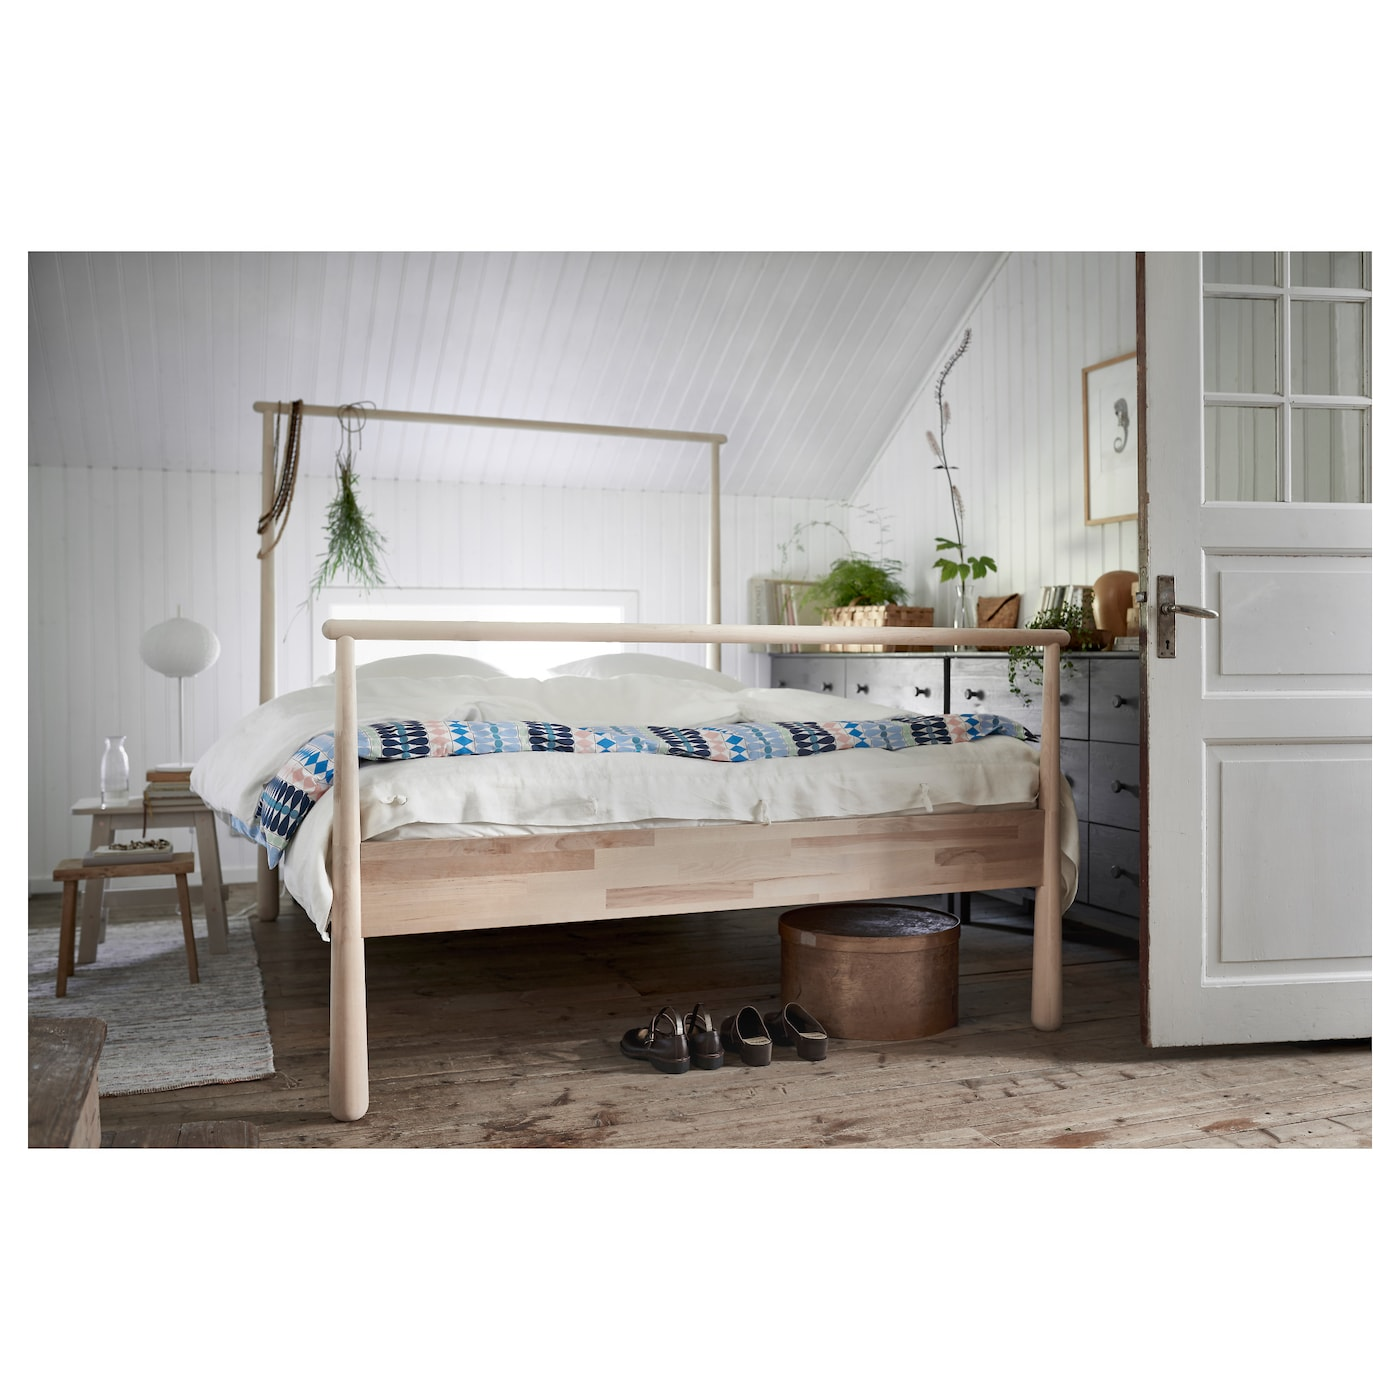 IKEA GJÖRA bed frame Adjustable bed sides allow you to use mattresses of different thicknesses.